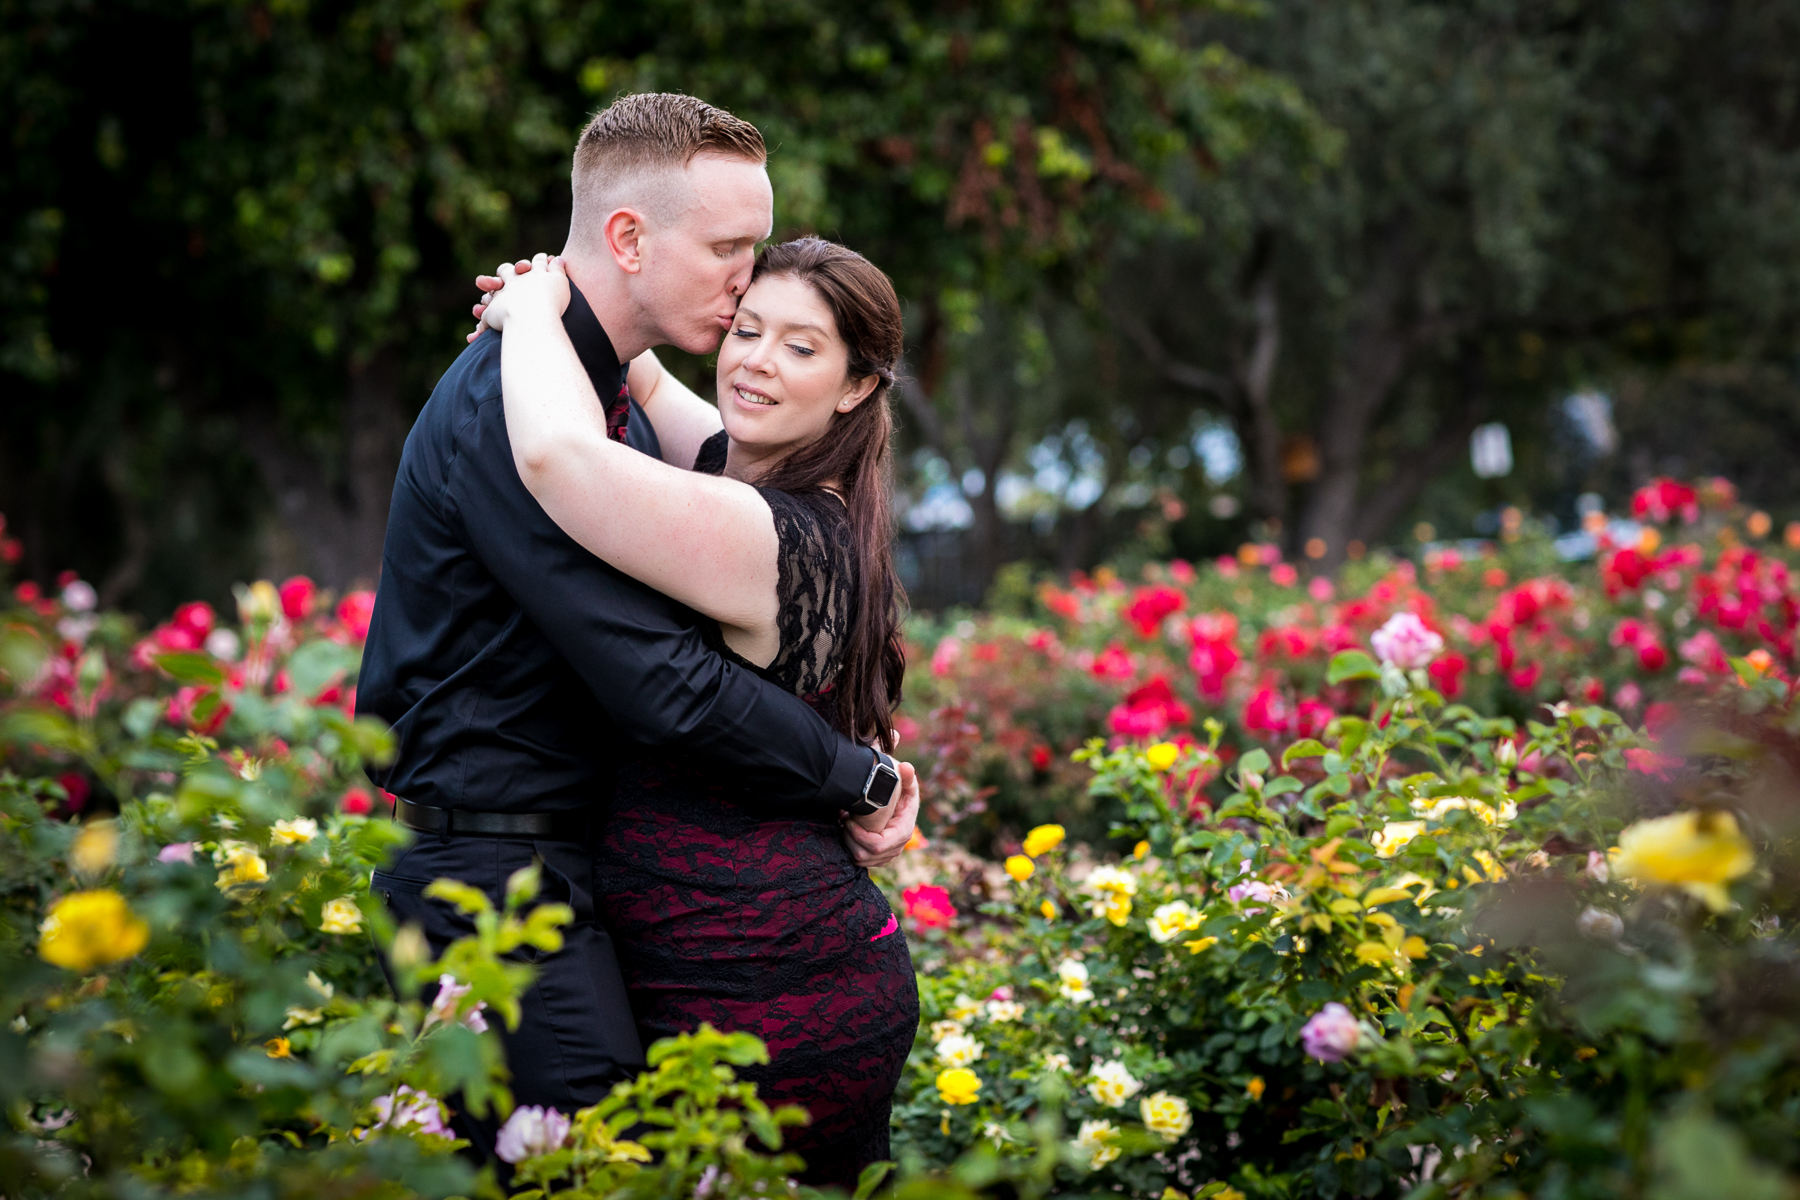 kiss in the middle of the rose garden at balboa park san diego engagement session